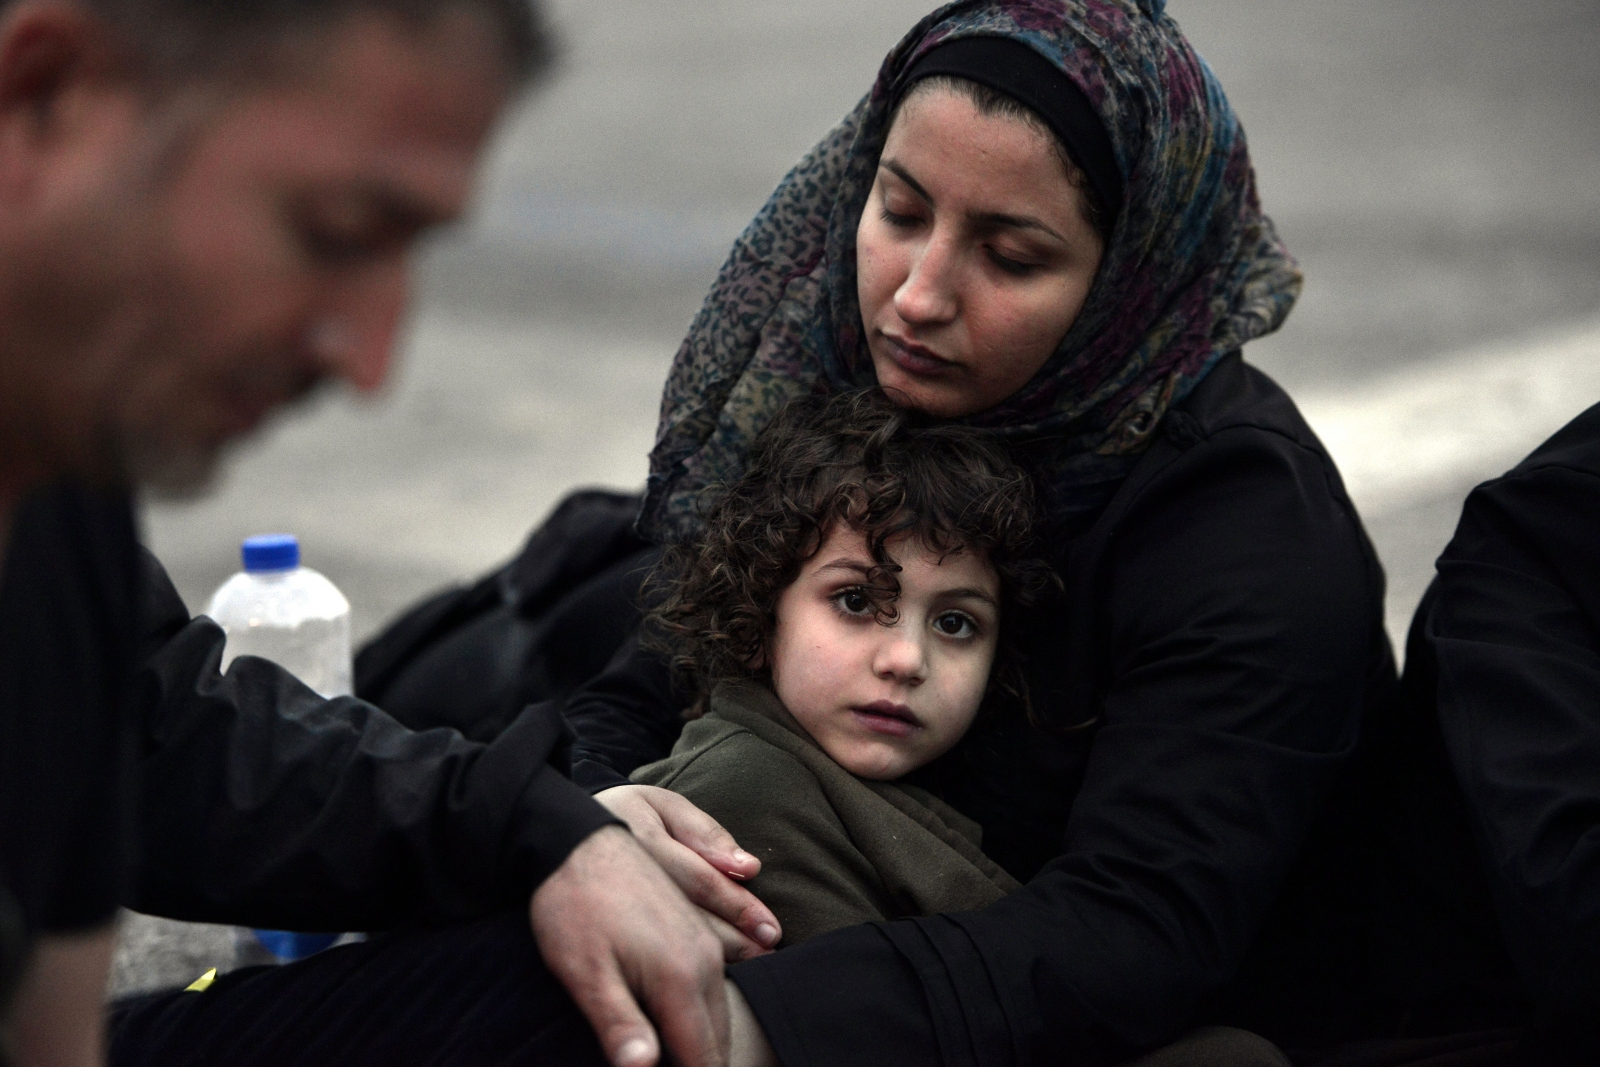 A Syrian mother tries to